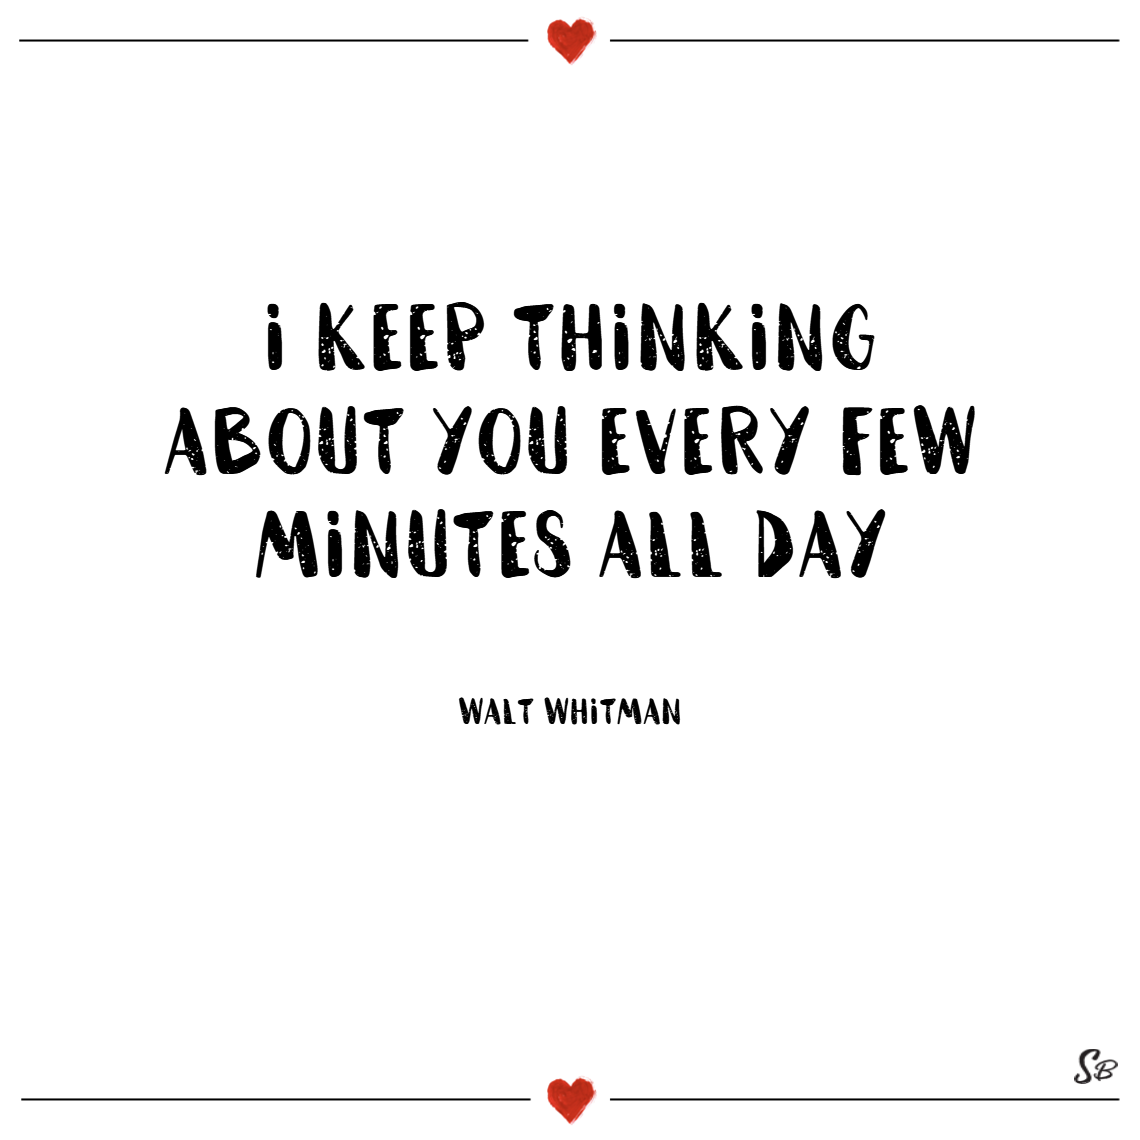 I keep thinking about you every few minutes all day. – walt whitman